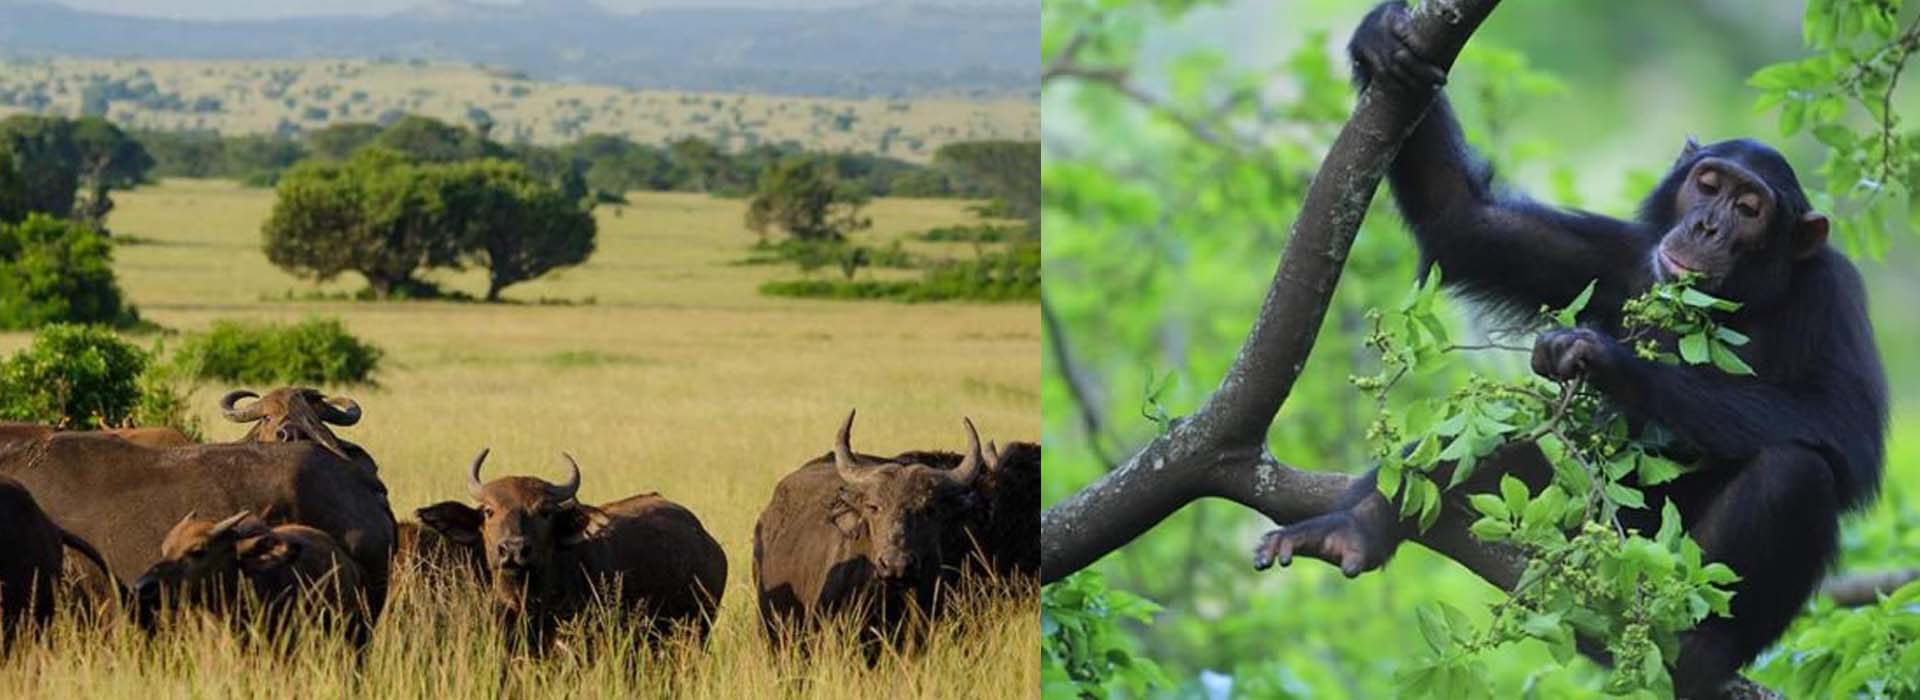 4 Days Wildlife and Primate Safari Uganda